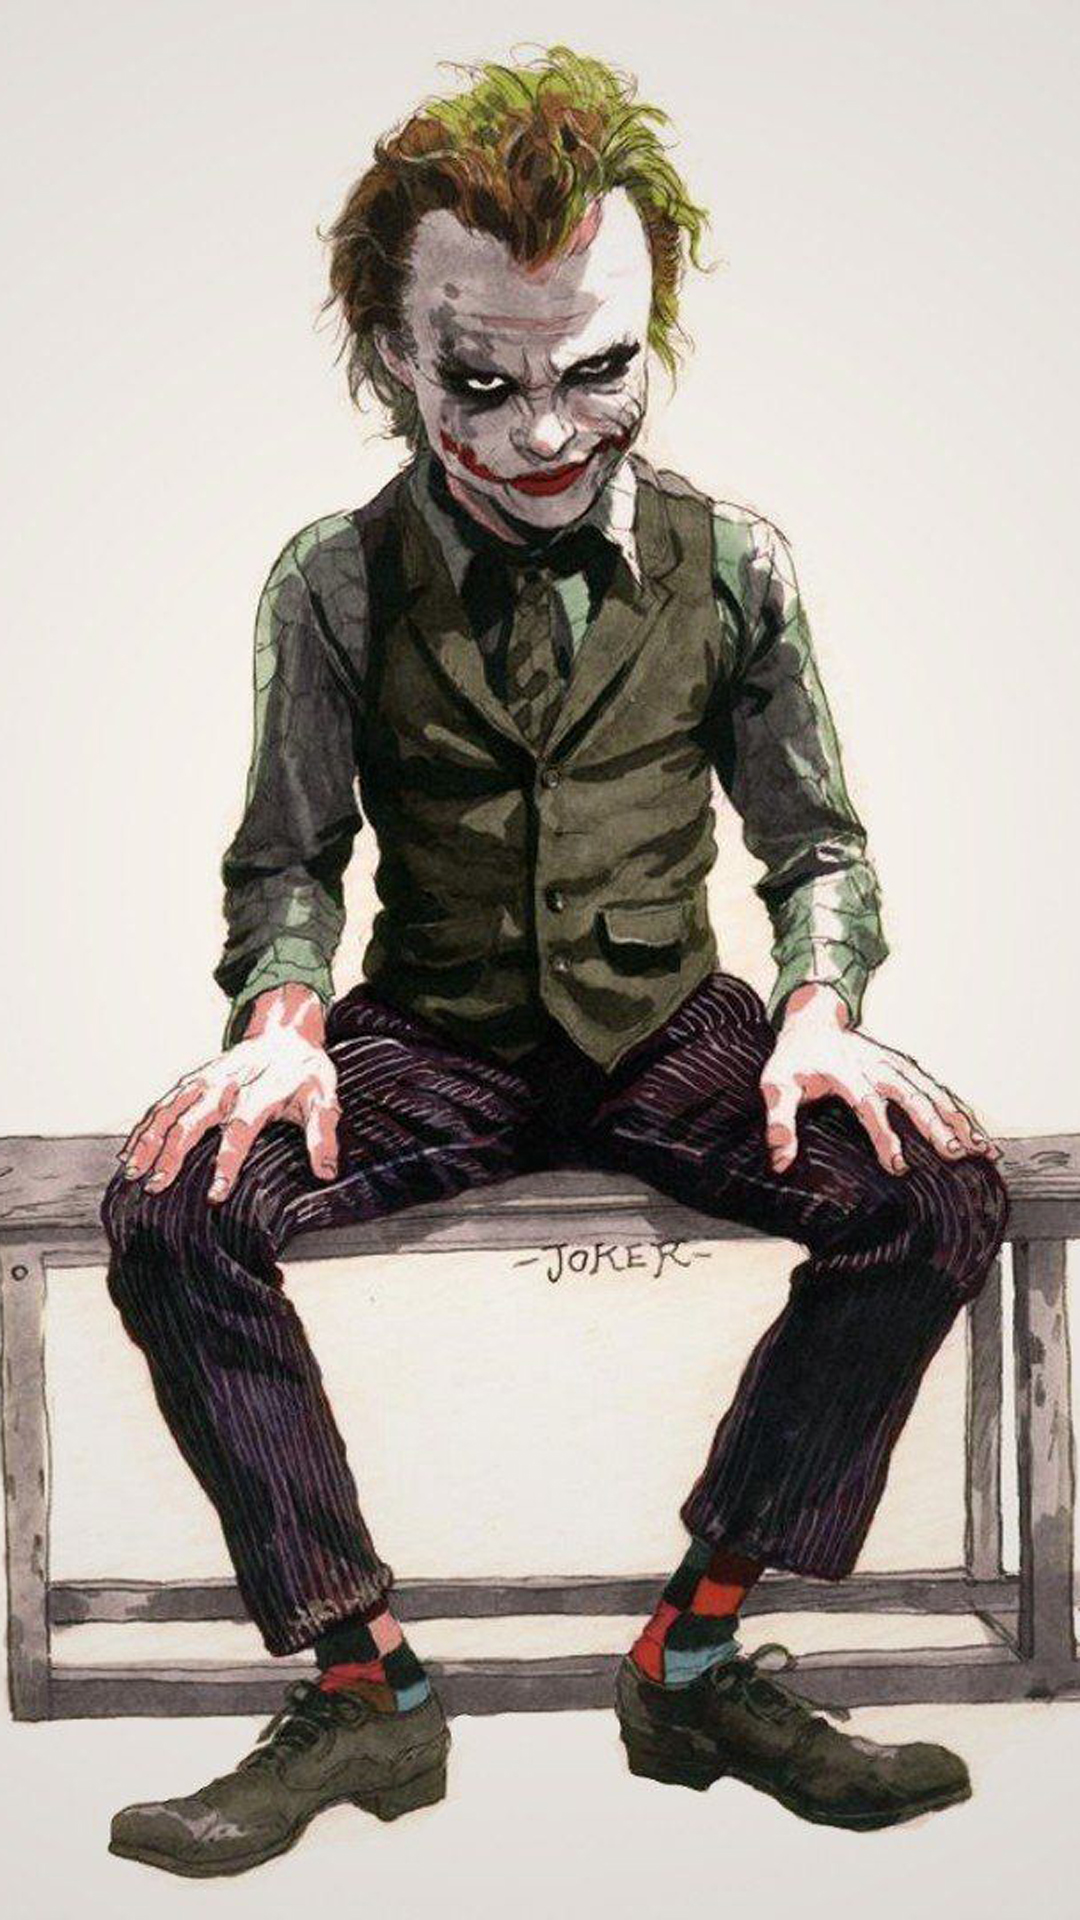 Cool Joker Painting